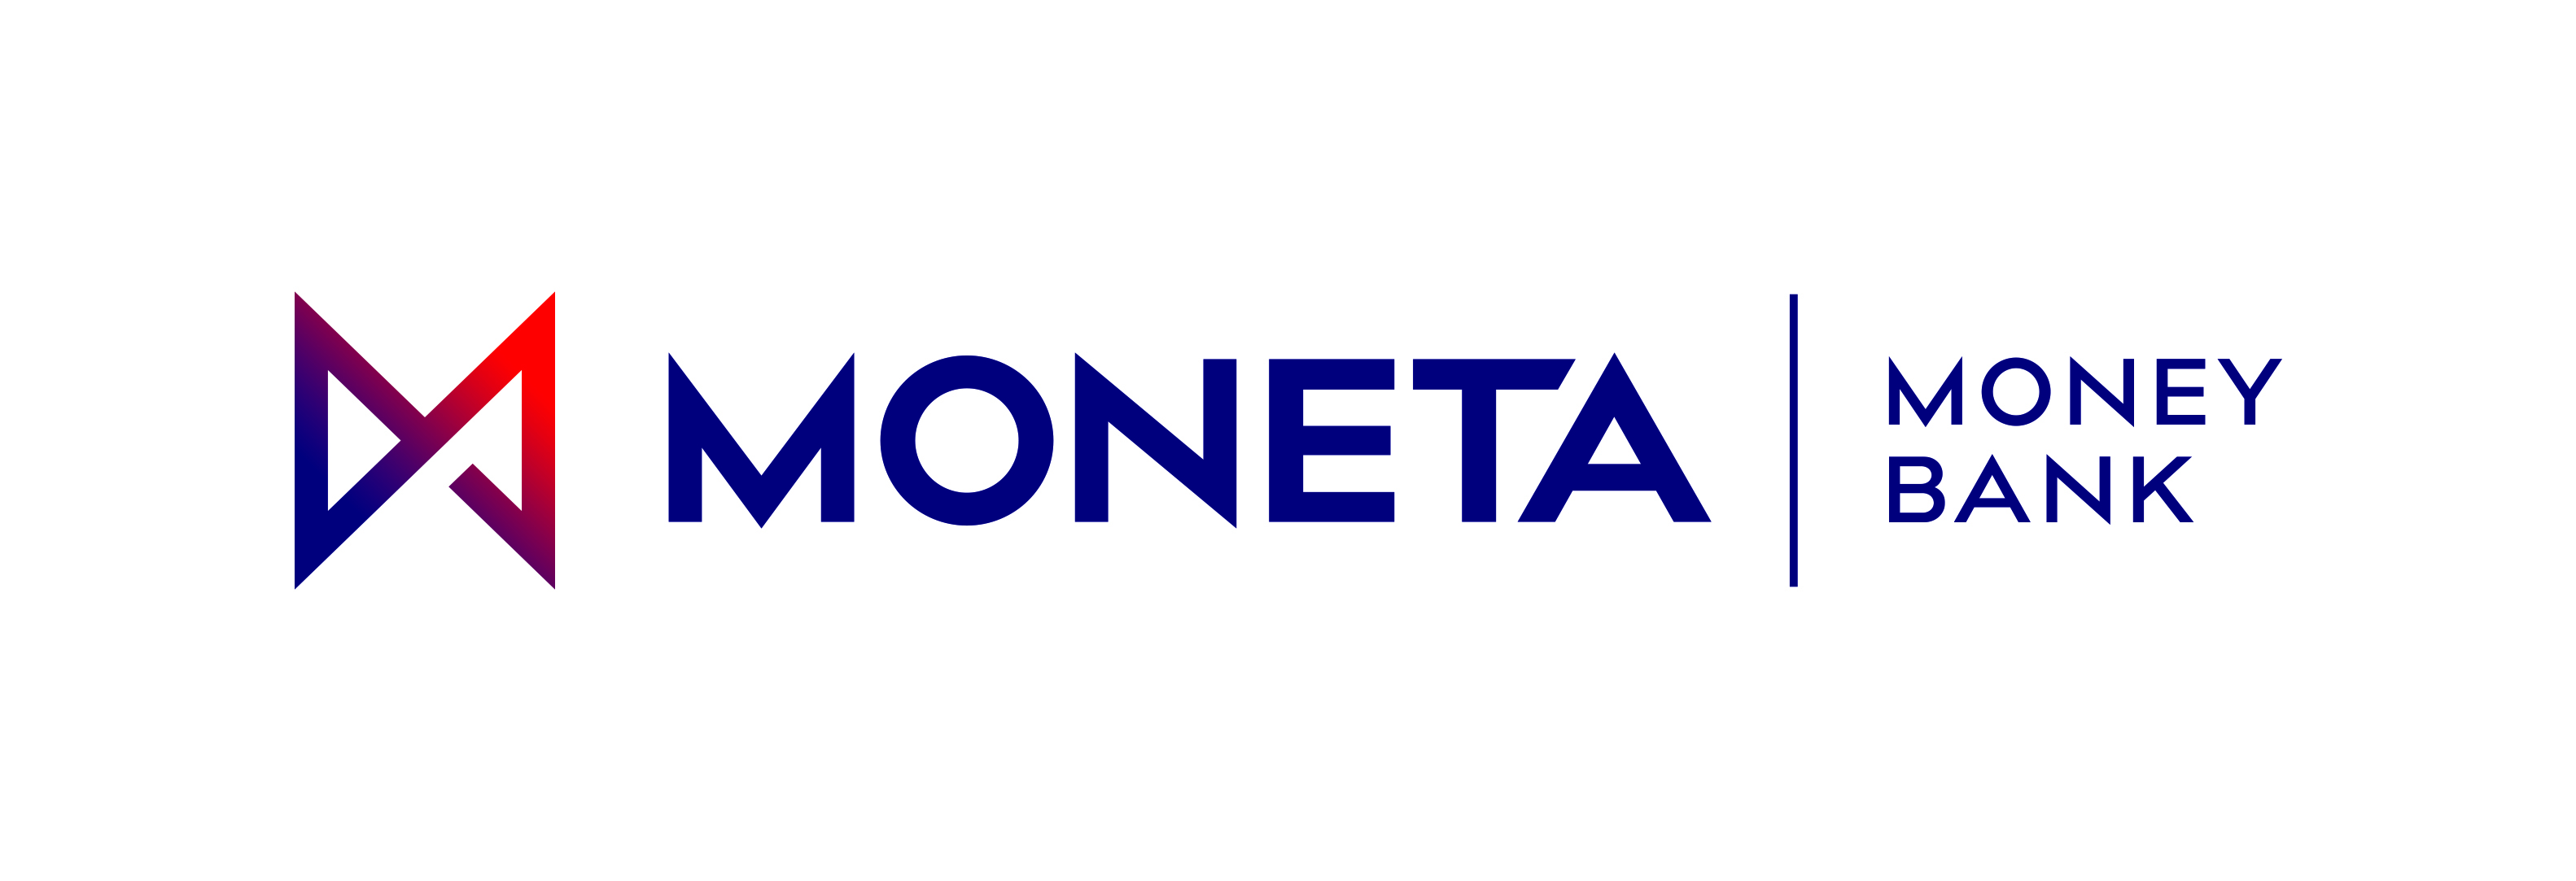 logo_moneta_money_bank